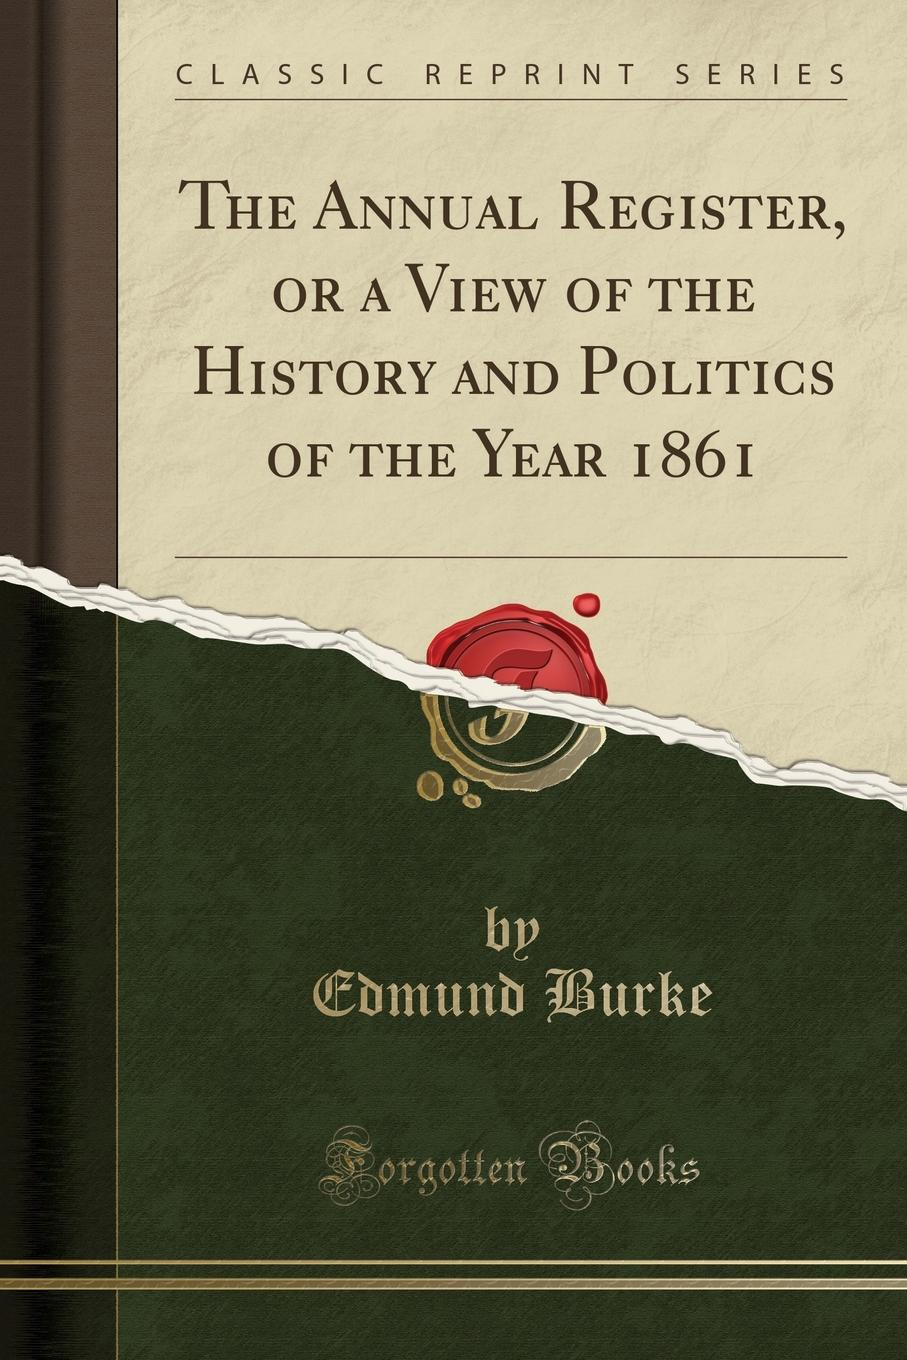 Edmund Burke The Annual Register, or a View of the History and Politics of the Year 1861 (Classic Reprint) mr monk and the new lieutenan